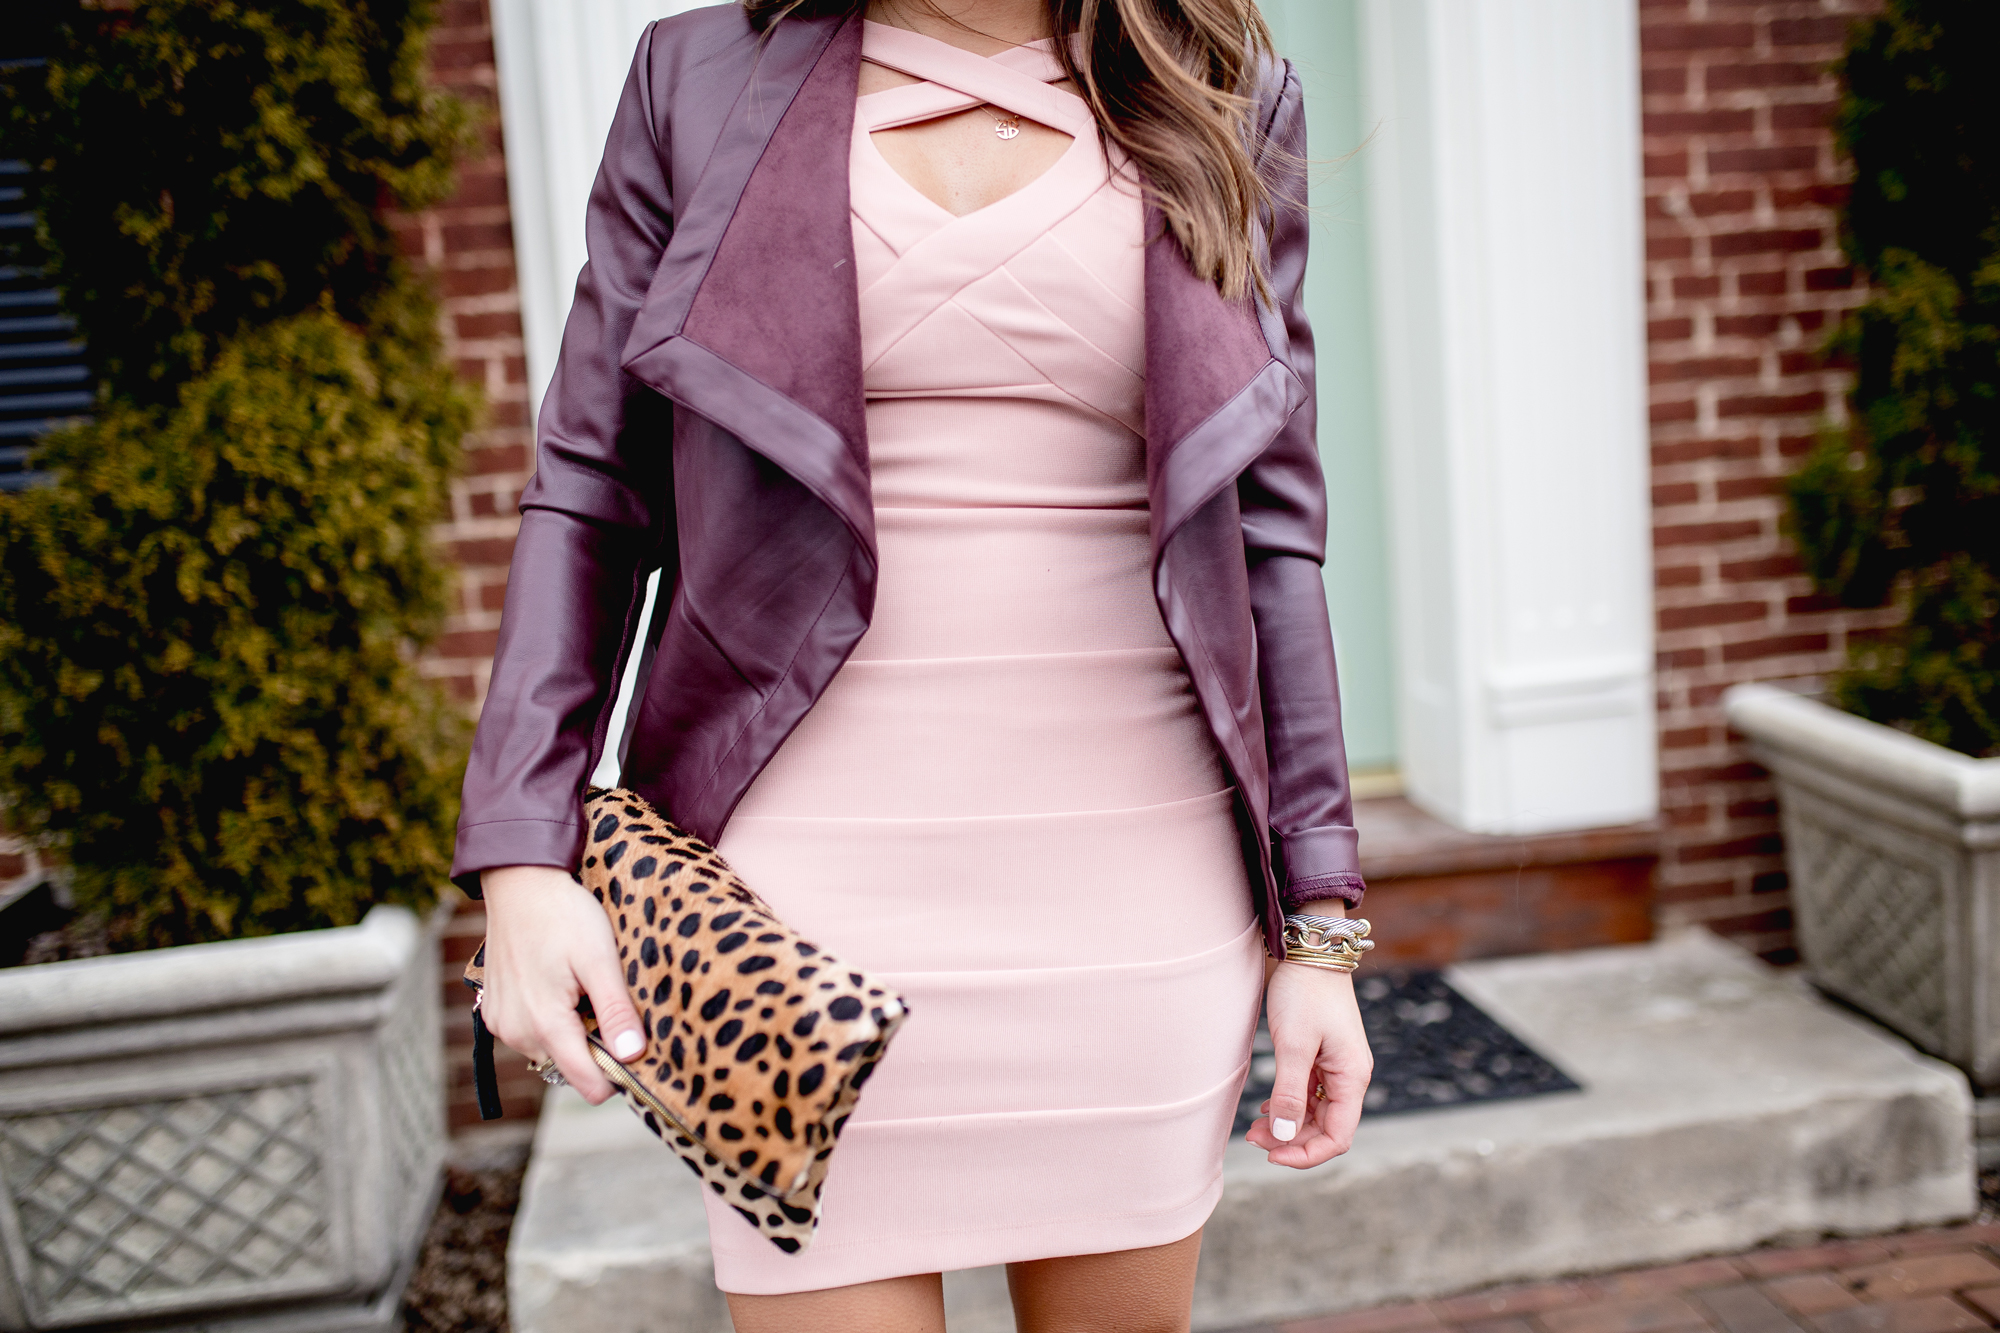 Valentines Day Outfit Inspiration Ft. Body Con Dress via Nordstrom, Leather Jacket, Leopard Clutch, Kendra Scott Jewelry